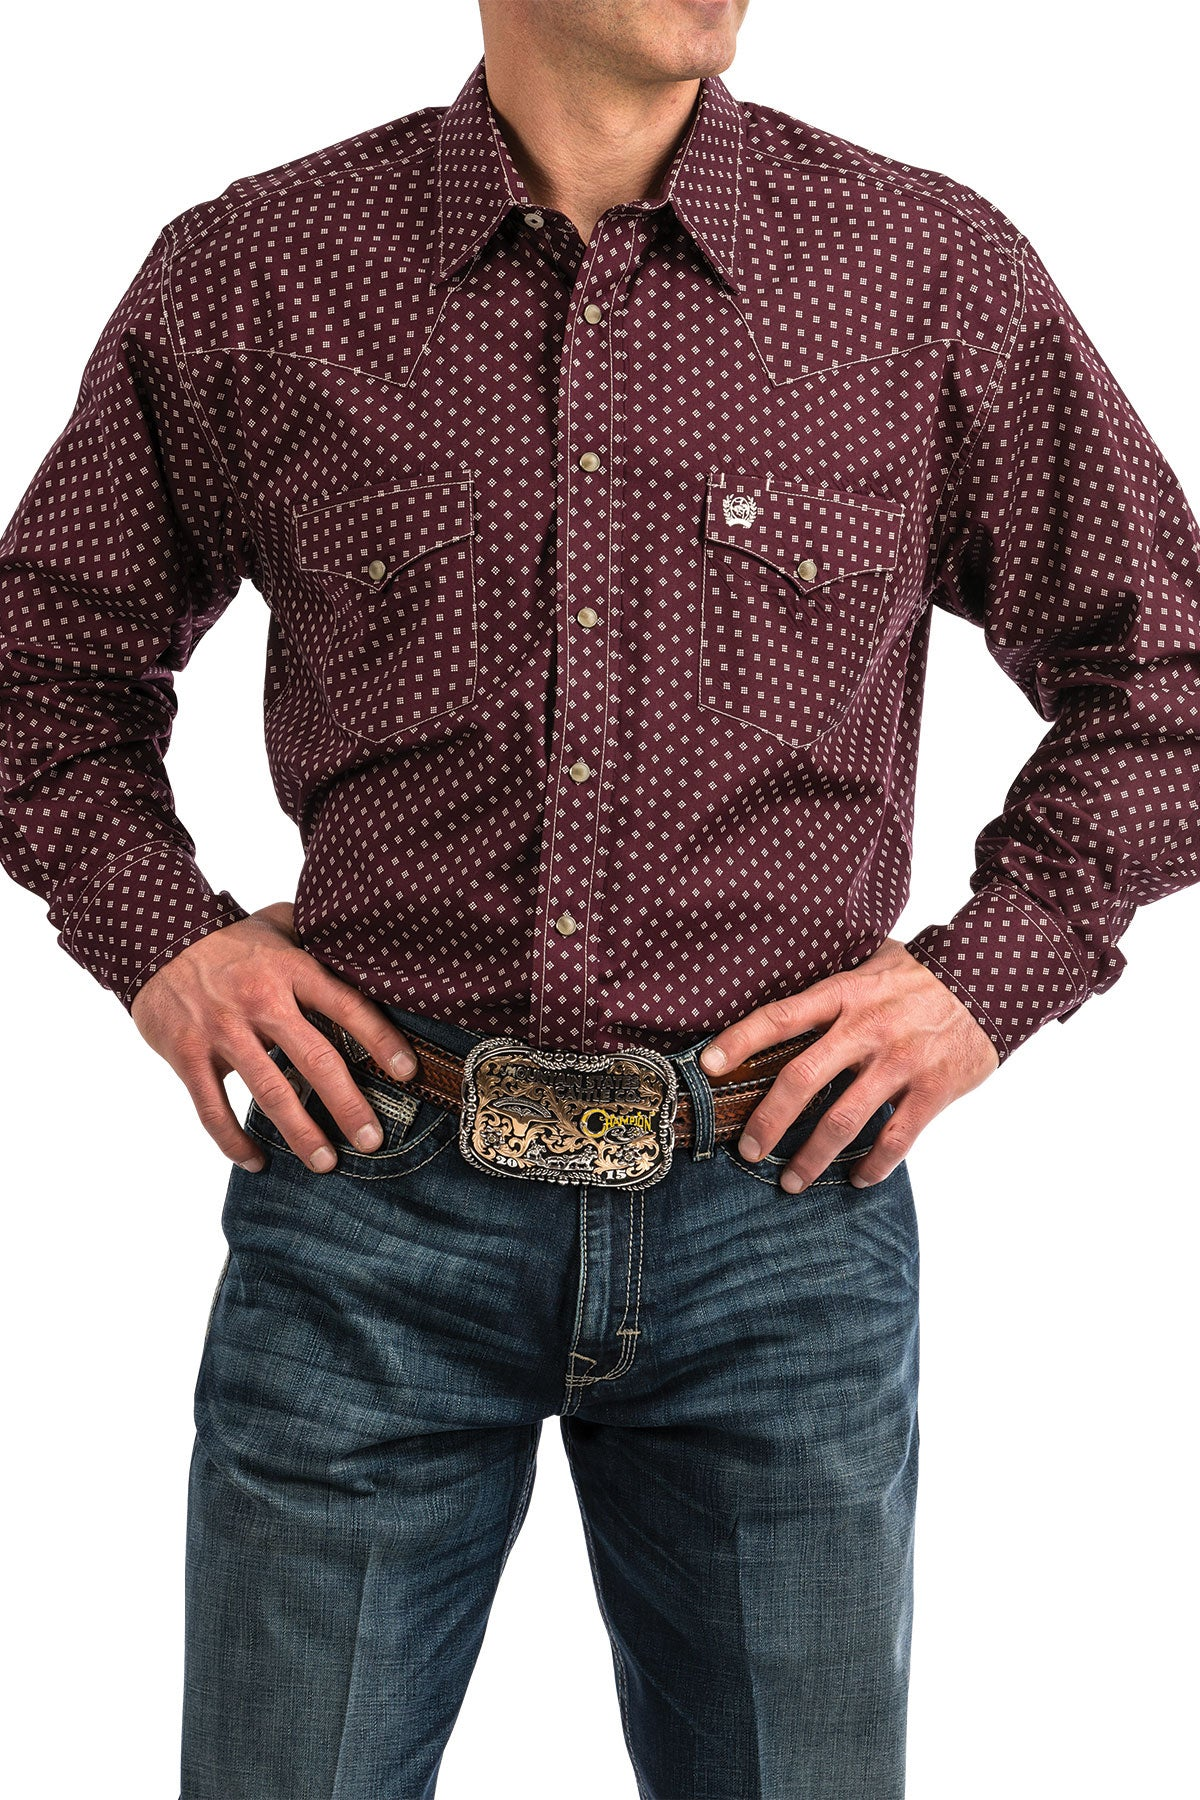 Cinch Burgundy Men's Pearl Snap Shirt